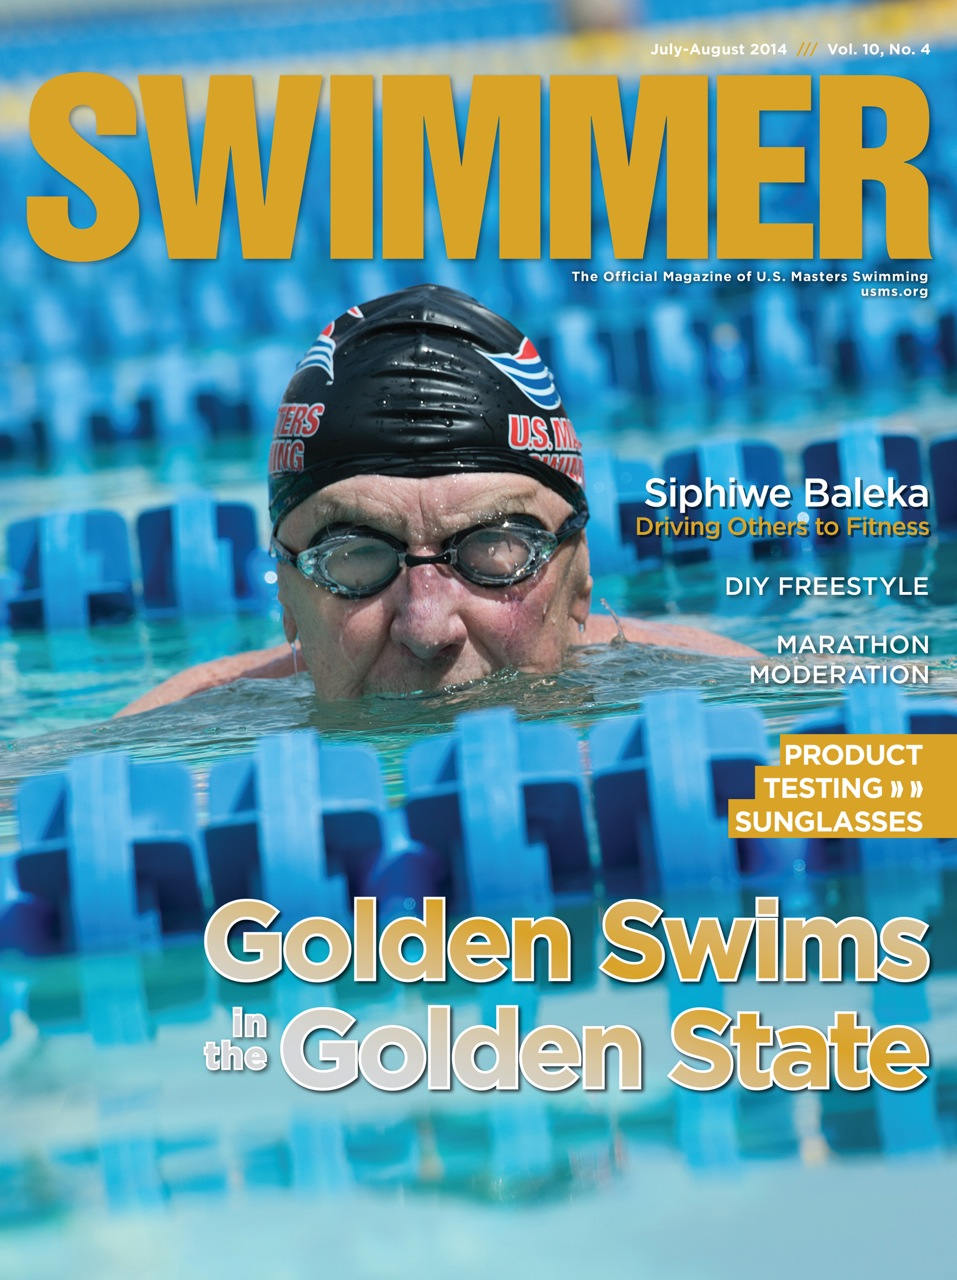 Swimmer Magazine Cover